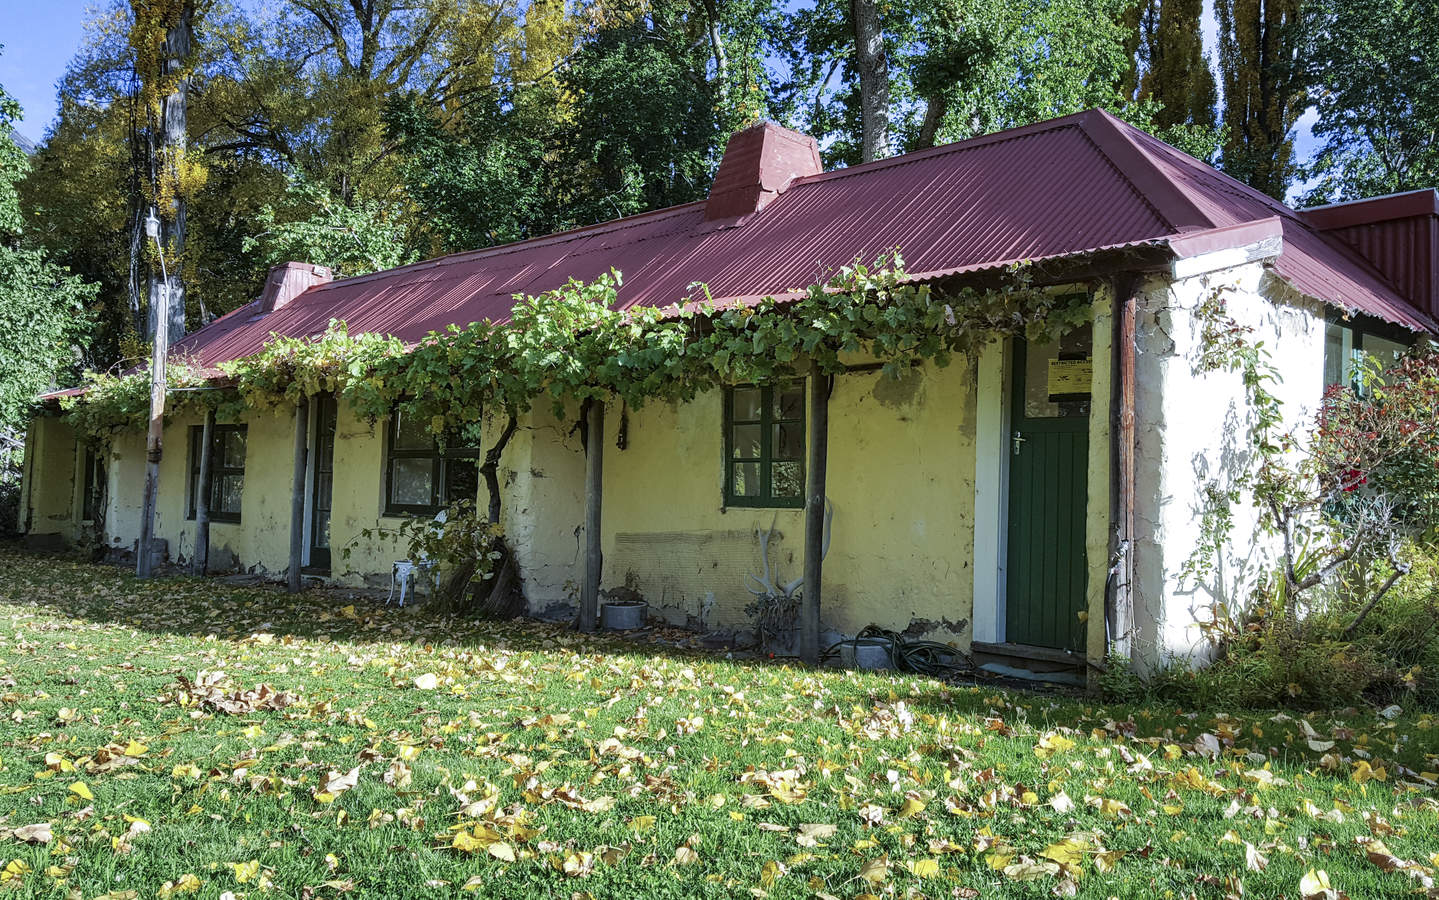 The historic cob cottage built in 1859 that is now unsafe to live in